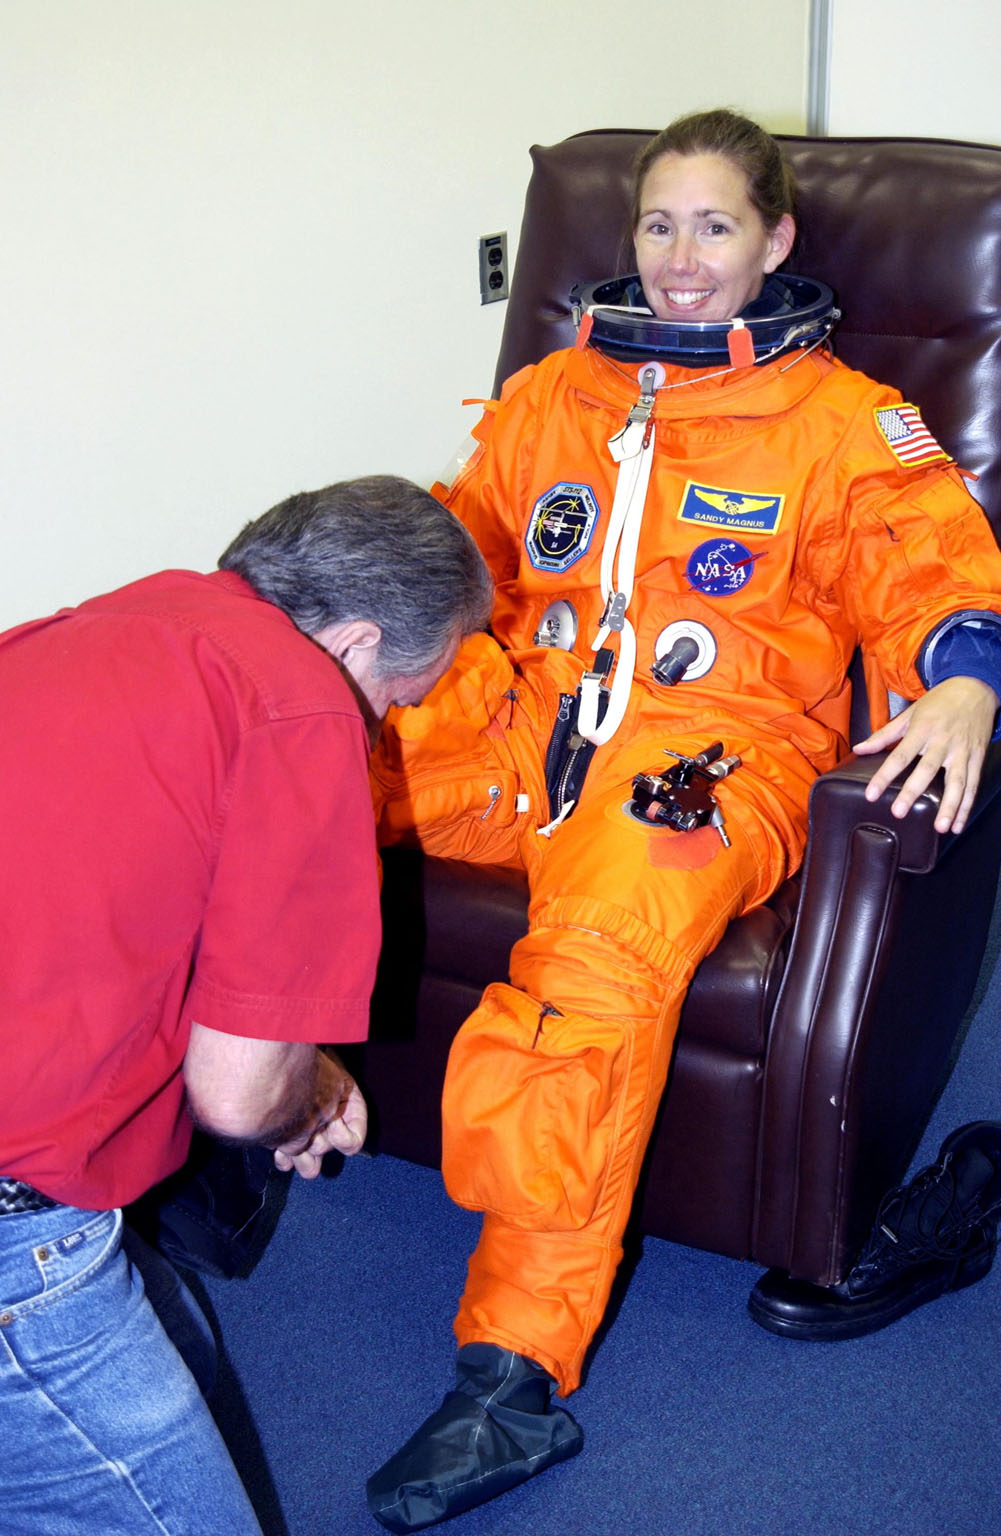 KENNEDY SPACE CENTER, Fla. - STS-112 Mission Specialist Sandra Magnus gets help donning her boots during suit check, part of Terminal Countdown Demonstration Test activities. The TCDT also includes emergency egress training and a simulated launch countdown. The mission aboard Space Shuttle Atlantis is scheduled to launch no earlier than Oct. 2, between 2 and 6 p.m. EDT. STS-112 is the 15th assembly mission to the International Space Station. Atlantis will be carrying the S1 Integrated Truss Structure, the first starboard truss segment. The S1 will be attached to the central truss segment, S0, during the 11-day mission. Magnus will serve as one of two operators of the Canadarm2 robotic arm for S1 truss installation and during three scheduled spacewalks. STS-112 is her first Shuttle flight.